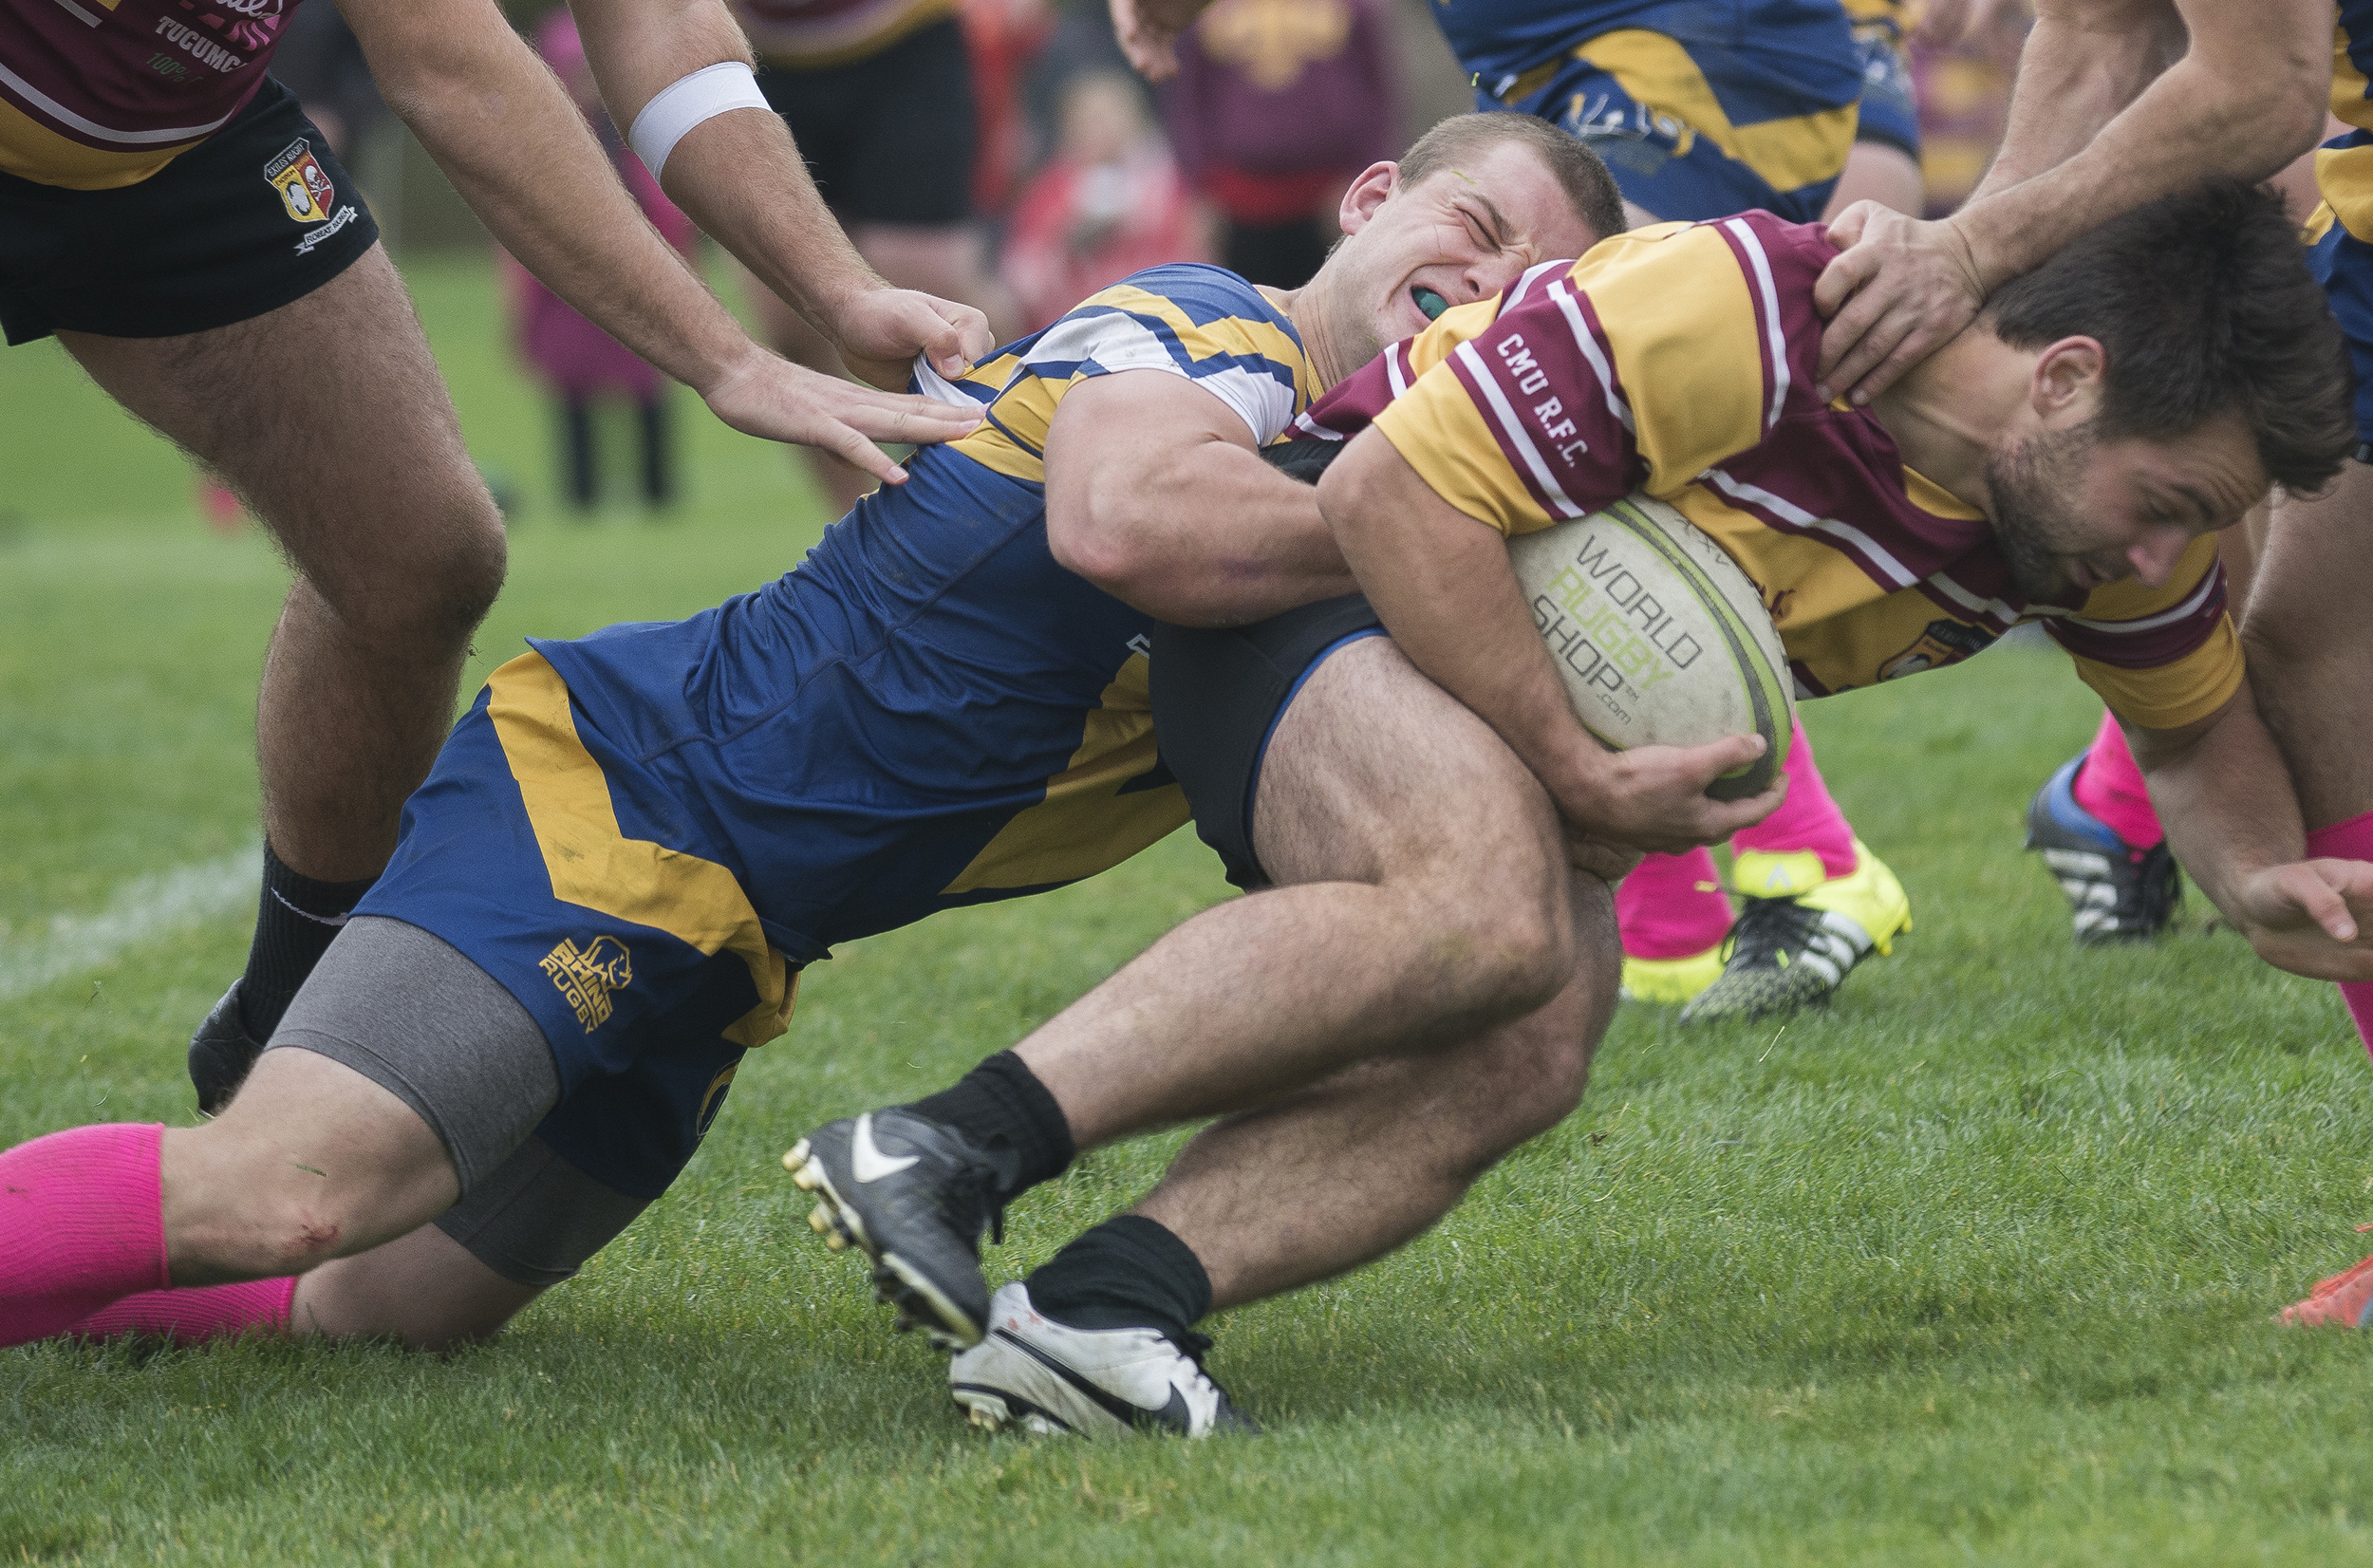 Kent State's Spencer Theiss tackles a Central Michigan player during the final Mens rugby home game of the season on October 31, 2015. Kent State fought hard to tie the match in the second half, but let in two late tries to lose 28-14.